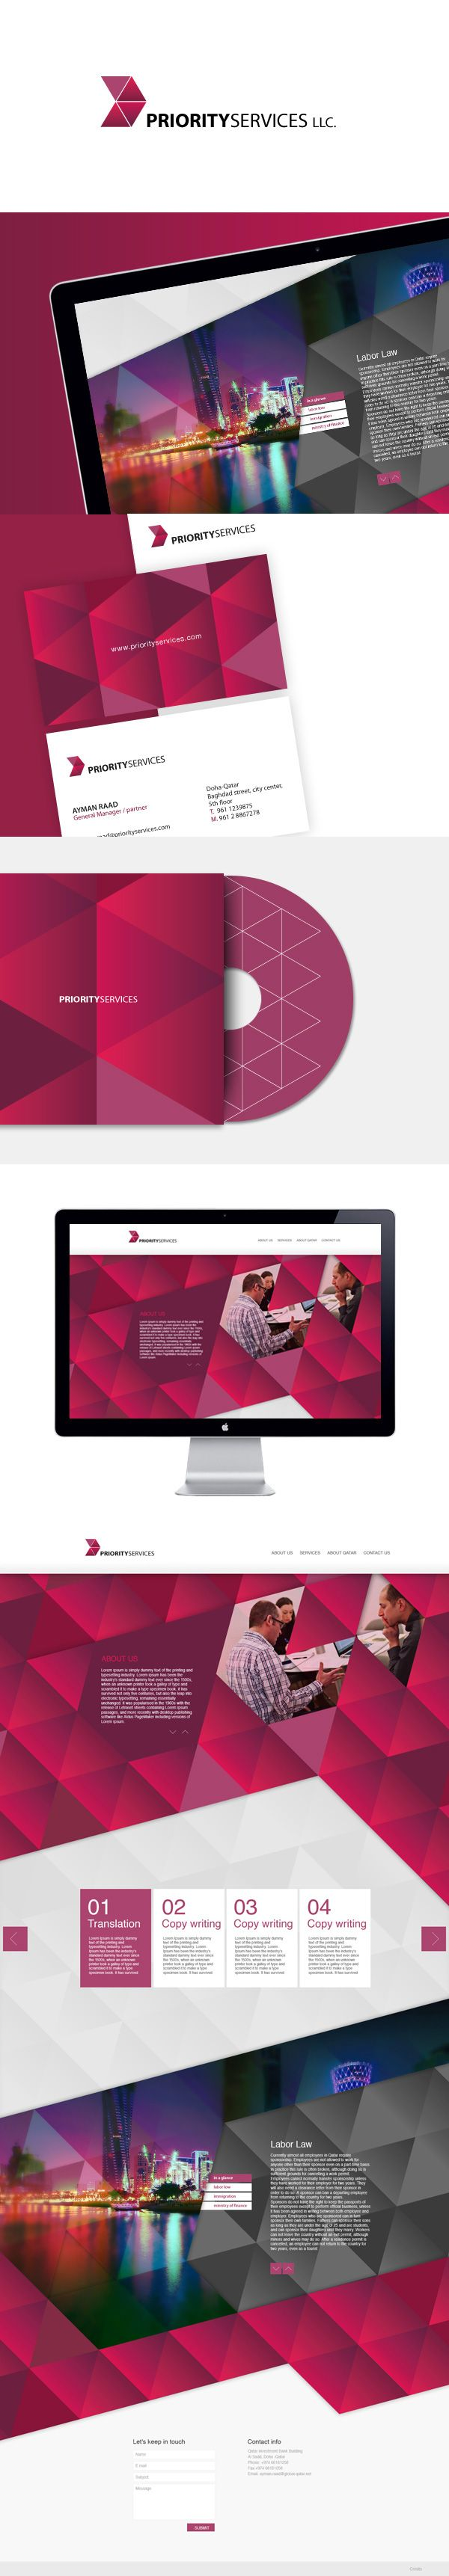 PRIORITY SERVICES on Behance